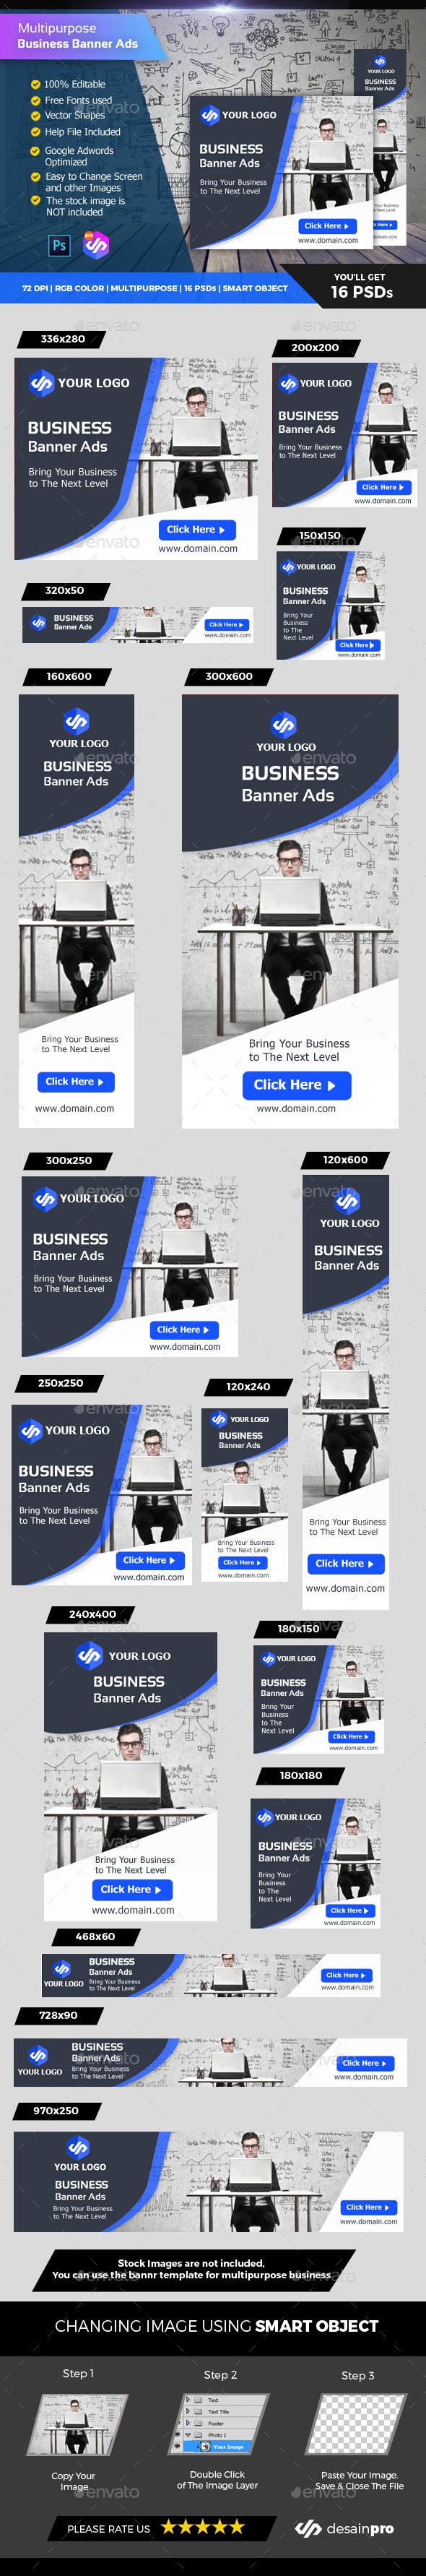 Corporate Business Banner Ads - Banners & Ads Web Elements